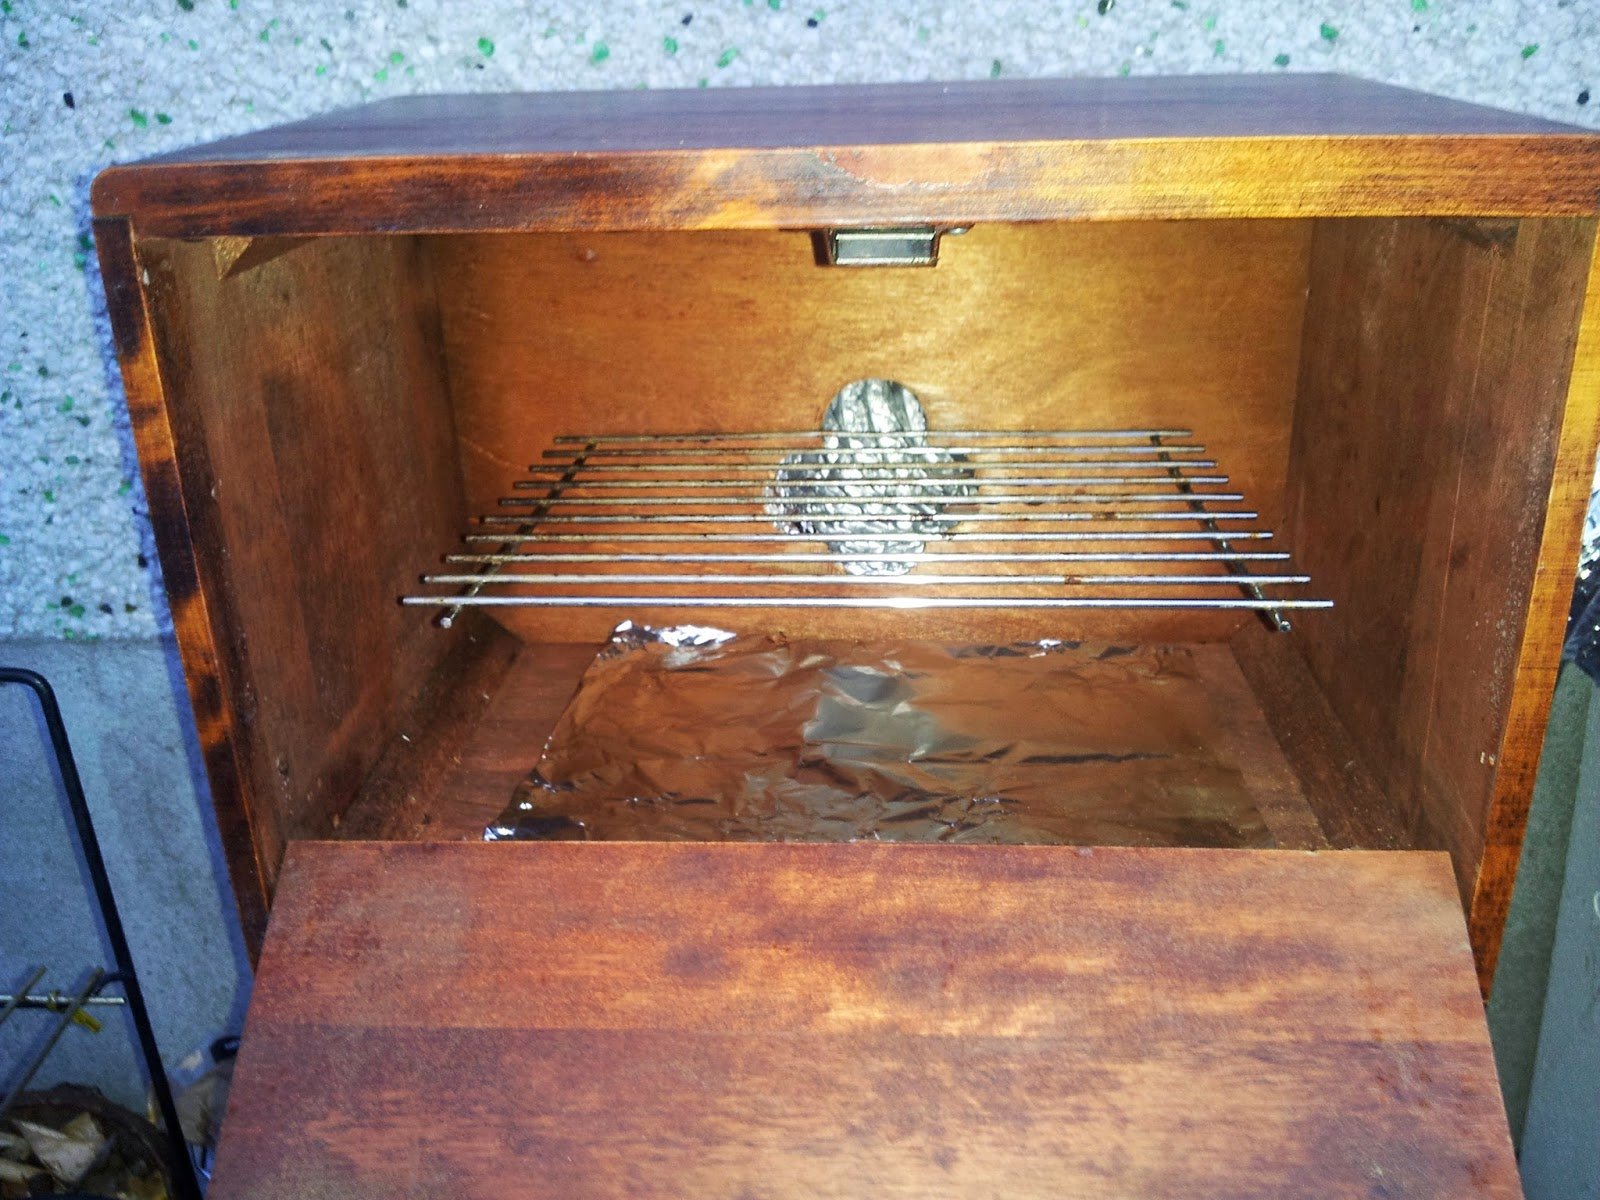 Building a Cold Smoker   Adventures in Self-Sufficiency